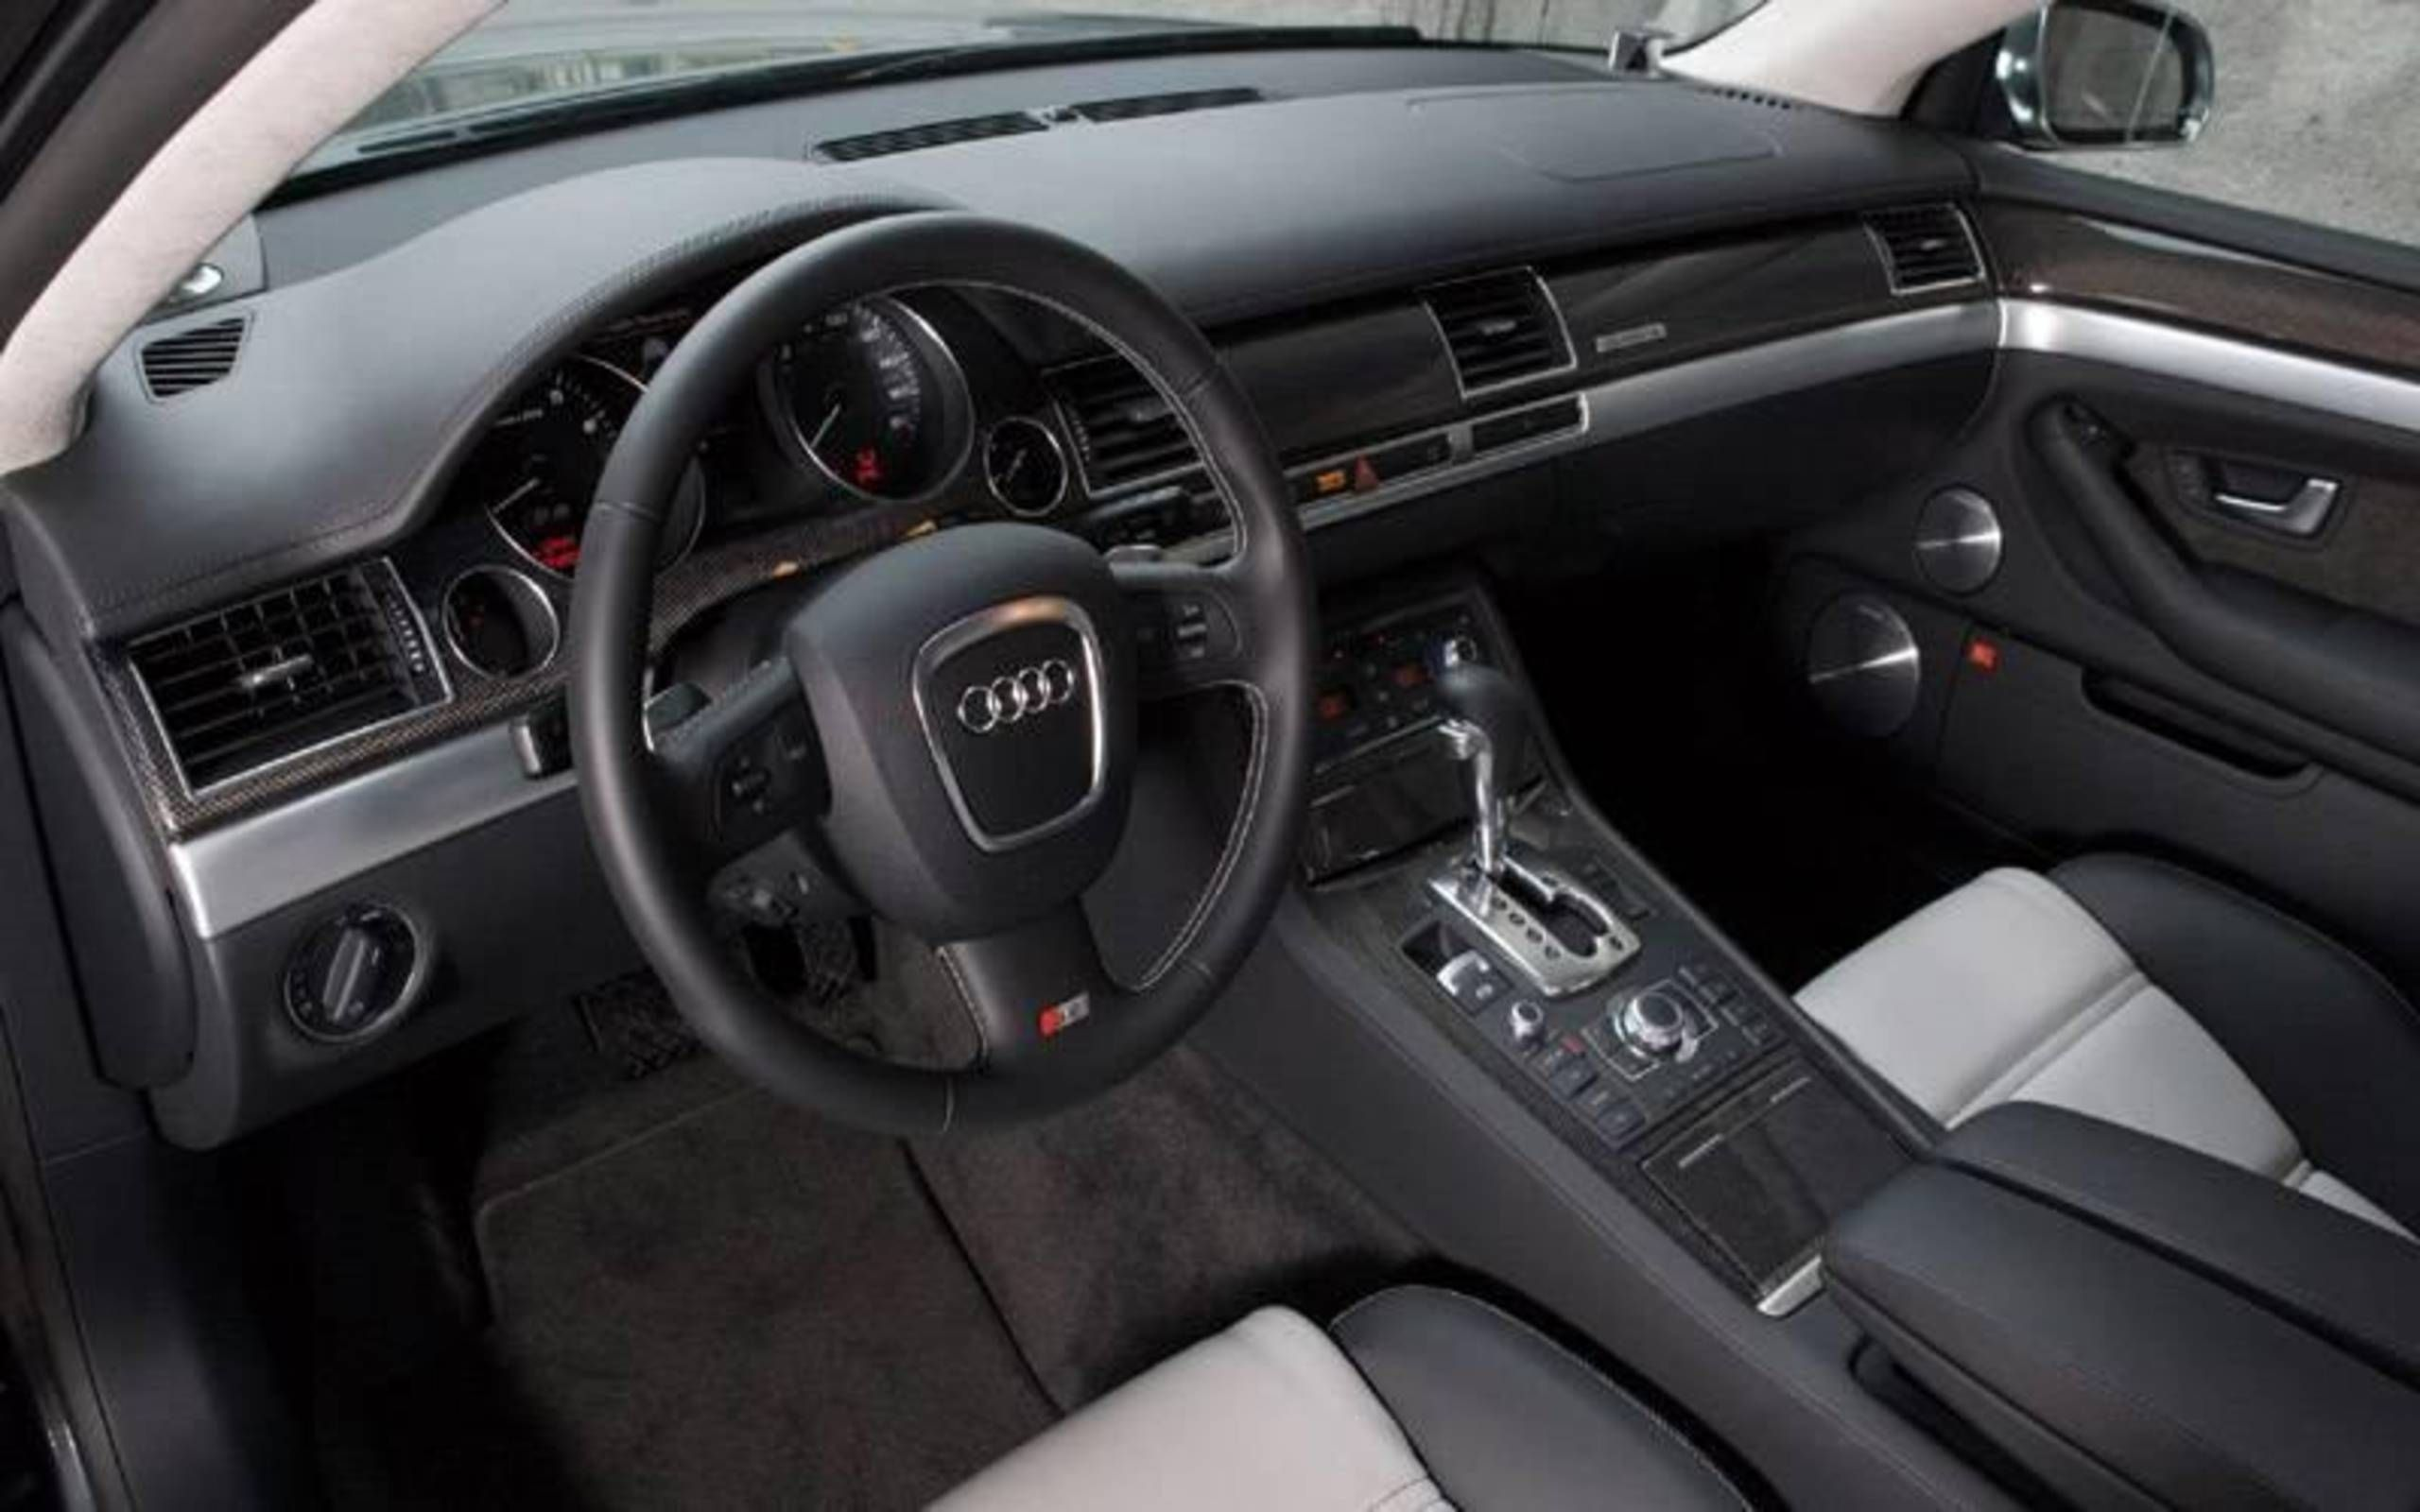 2007 Audi S8 Rockin It Hard Under The Radar